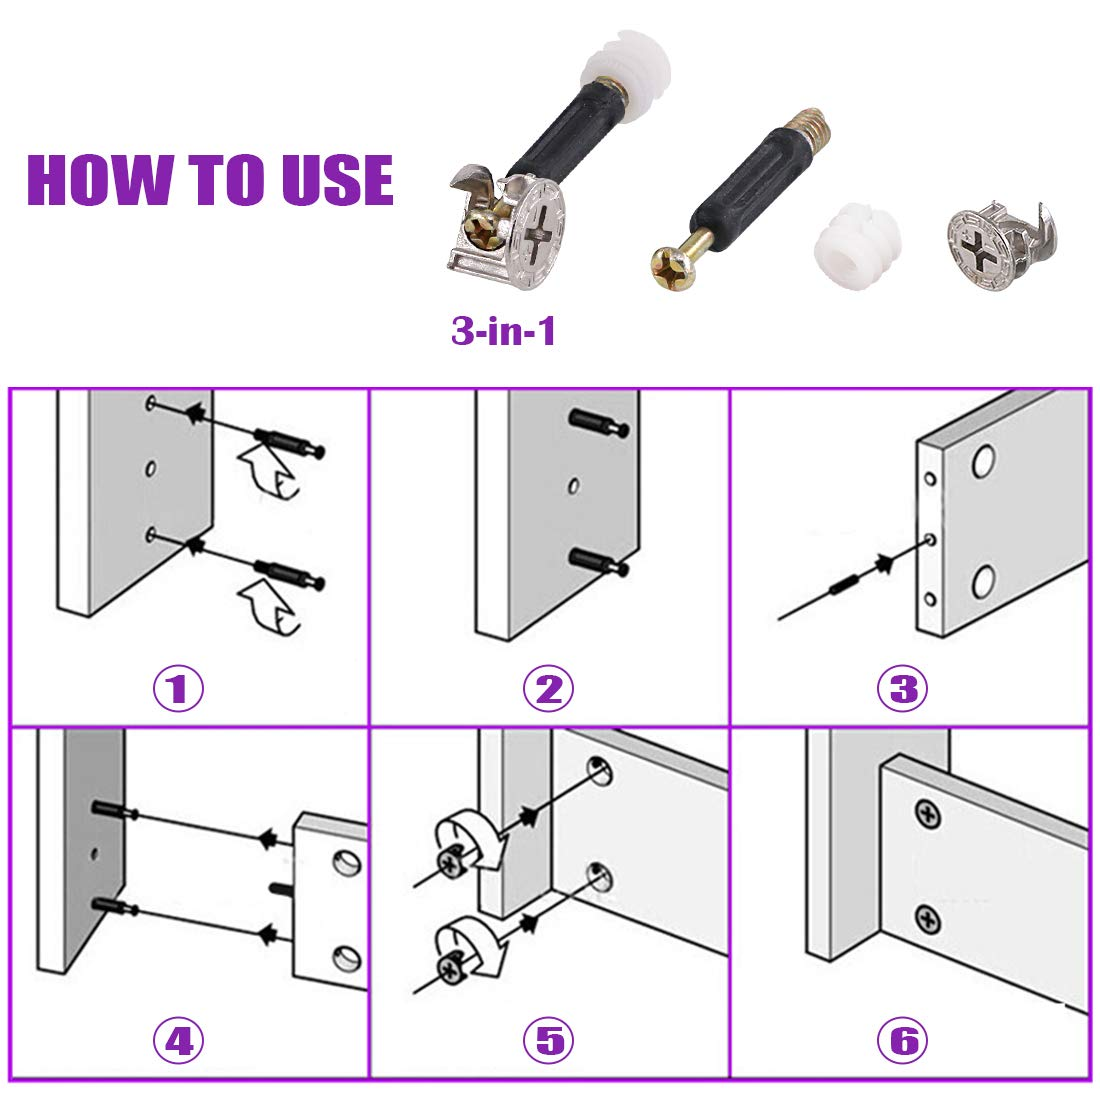 Cam Fitting with Dowel 3-in-1 Hardware Connectors Furniture Side Connecting Pre-Inserted Nut Screw Eccentric Wheel 125Pcs 3 in 1 Furniture Crib Hardware Screws Connecting Fittings Kit